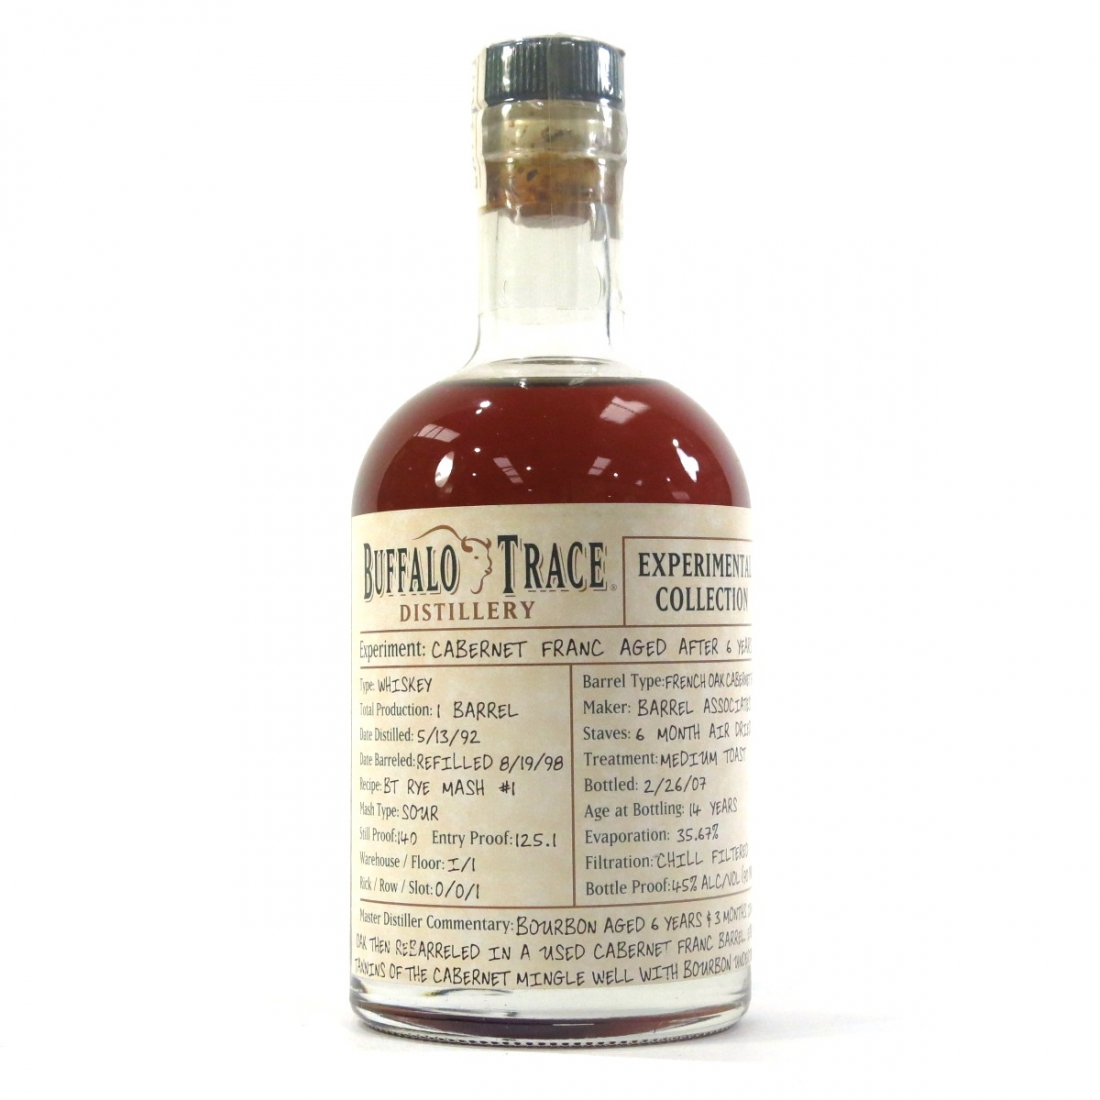 Buffalo Trace 1992 Experimental Collection 14 Year Old 37.5cl / 8 Year Cabernet Franc Finish